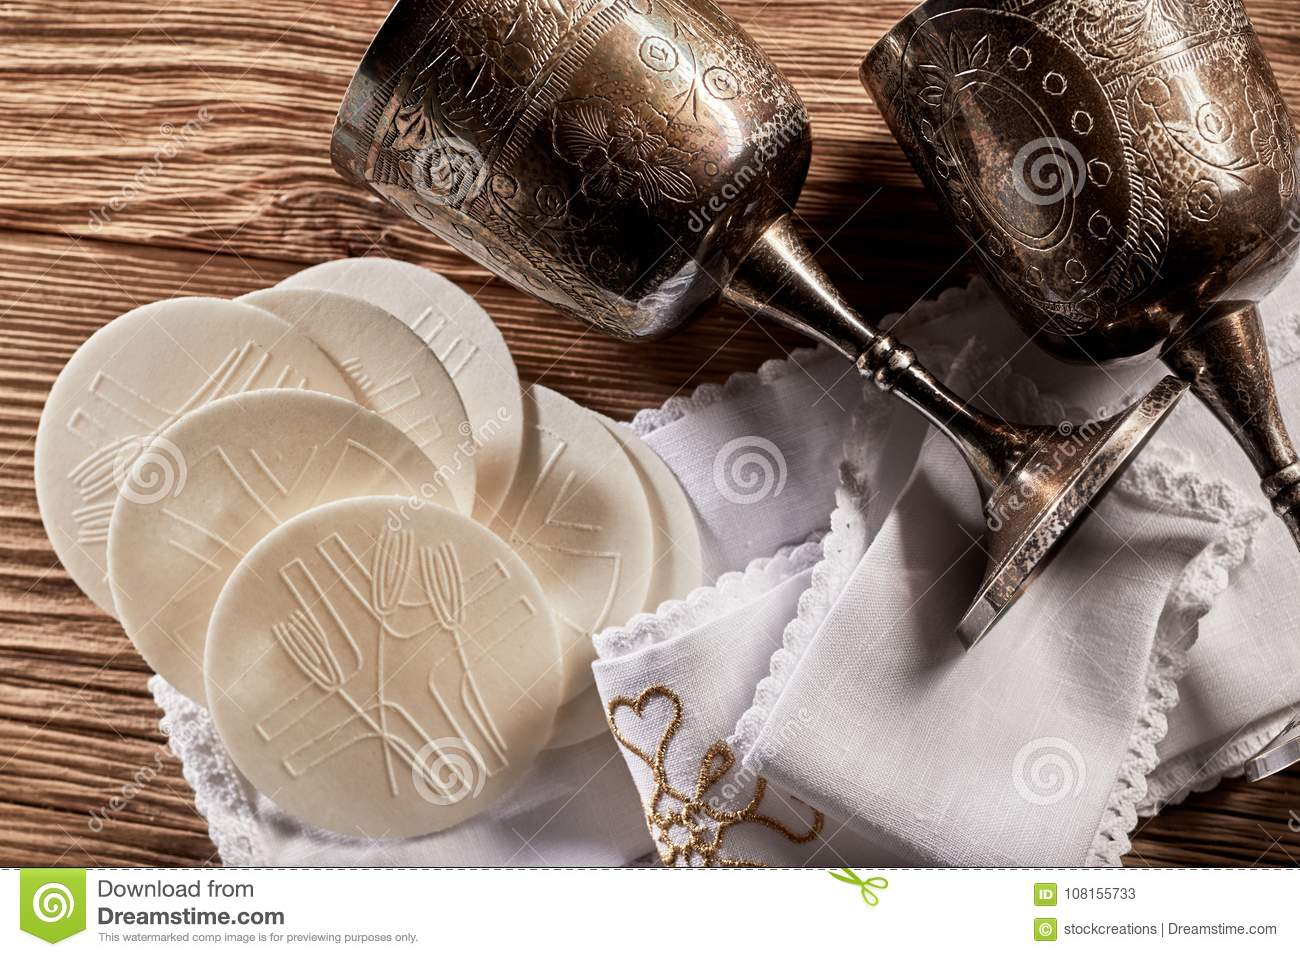 Sacramental Hosties with silver chalice cups